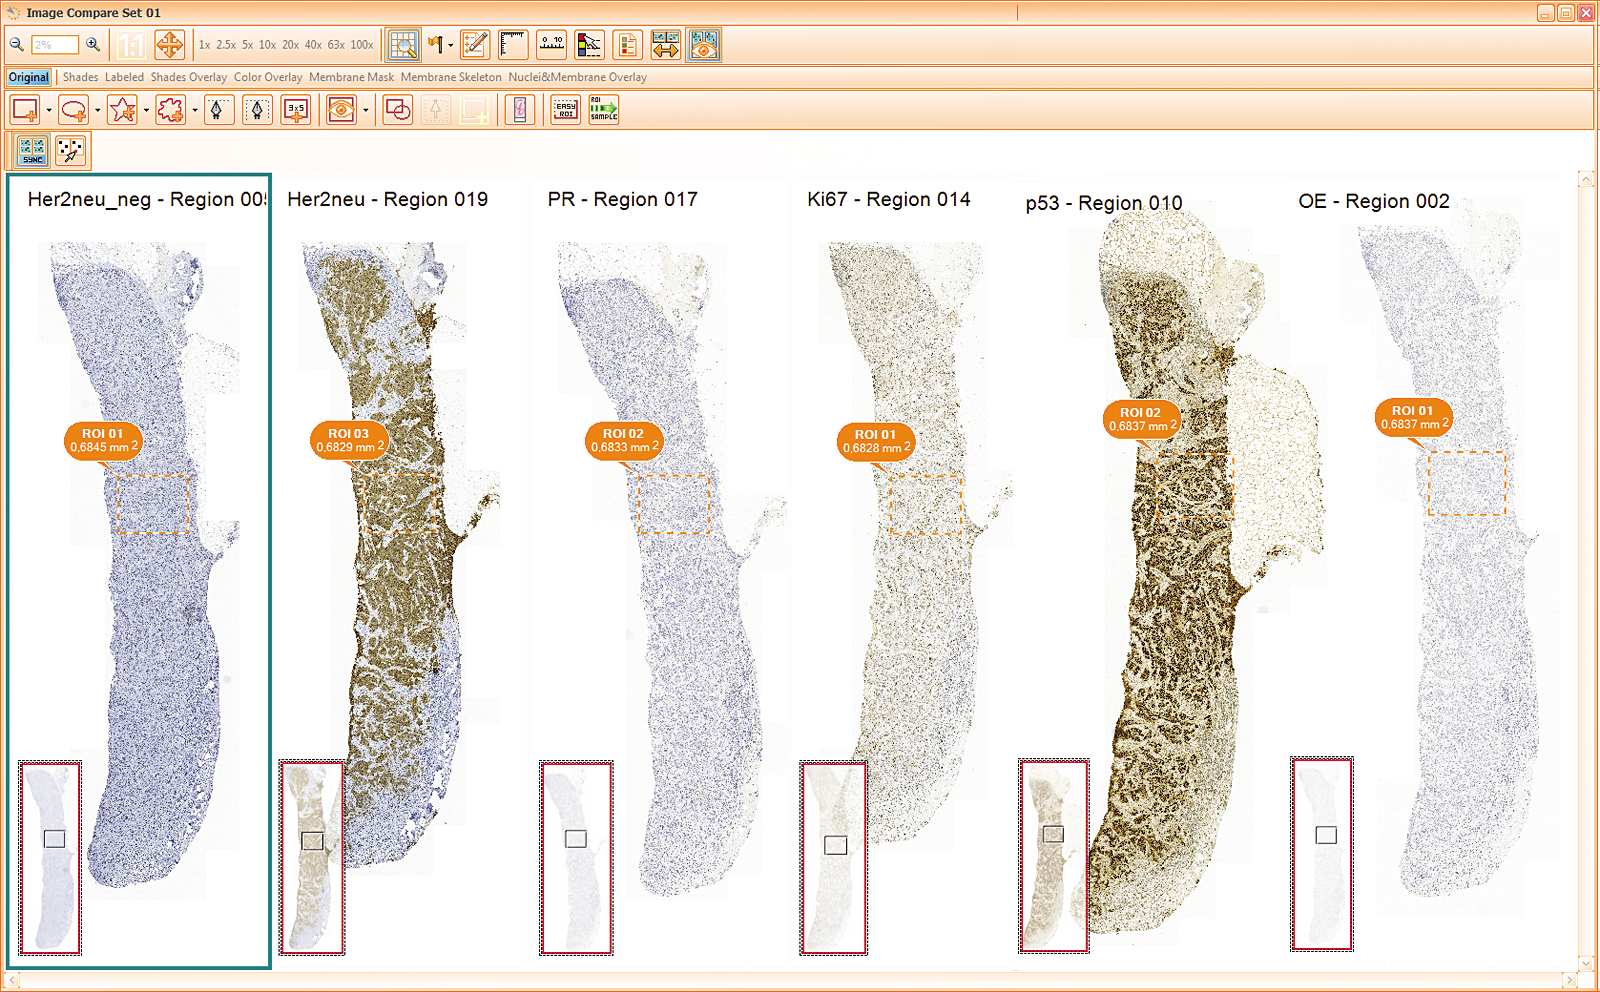 HiQ Screenshot 04 Multi Tissue (2)_CMYK